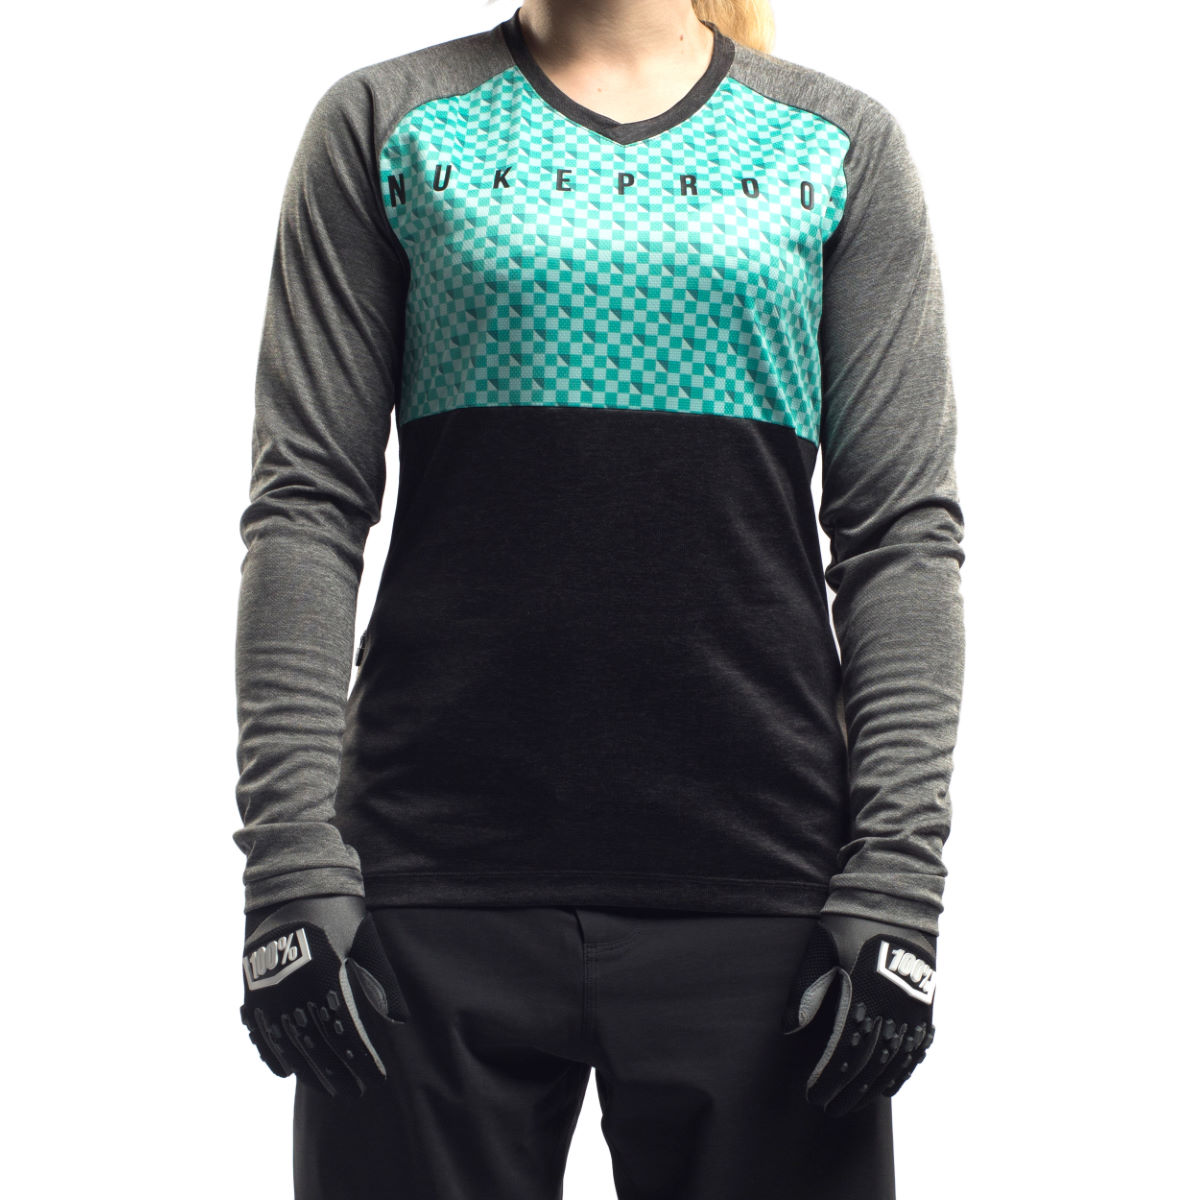 Maillot Femme Nukeproof Blackline Corp (manches longues) - Small